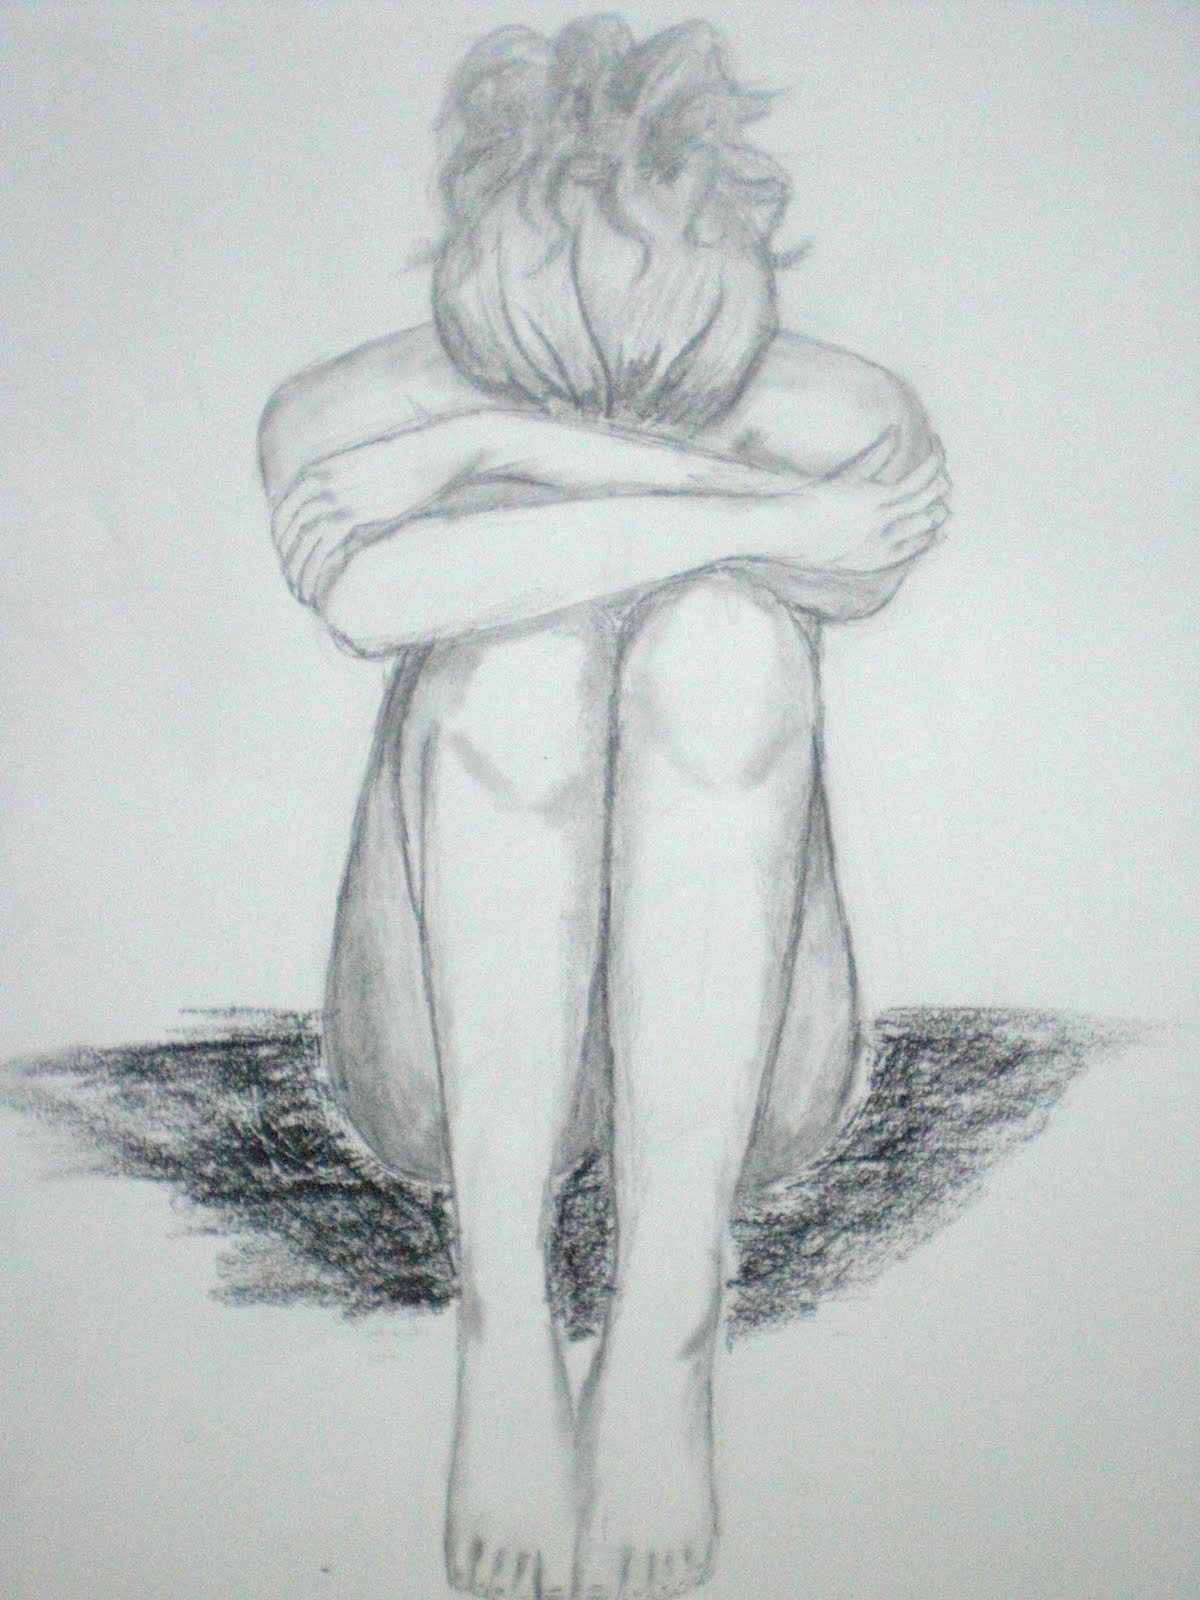 1200x1600 Lonely Girl Images Pencil Sketch Sad Girl Sketch Pic Pencil Sketch - Sad Girl Sketch